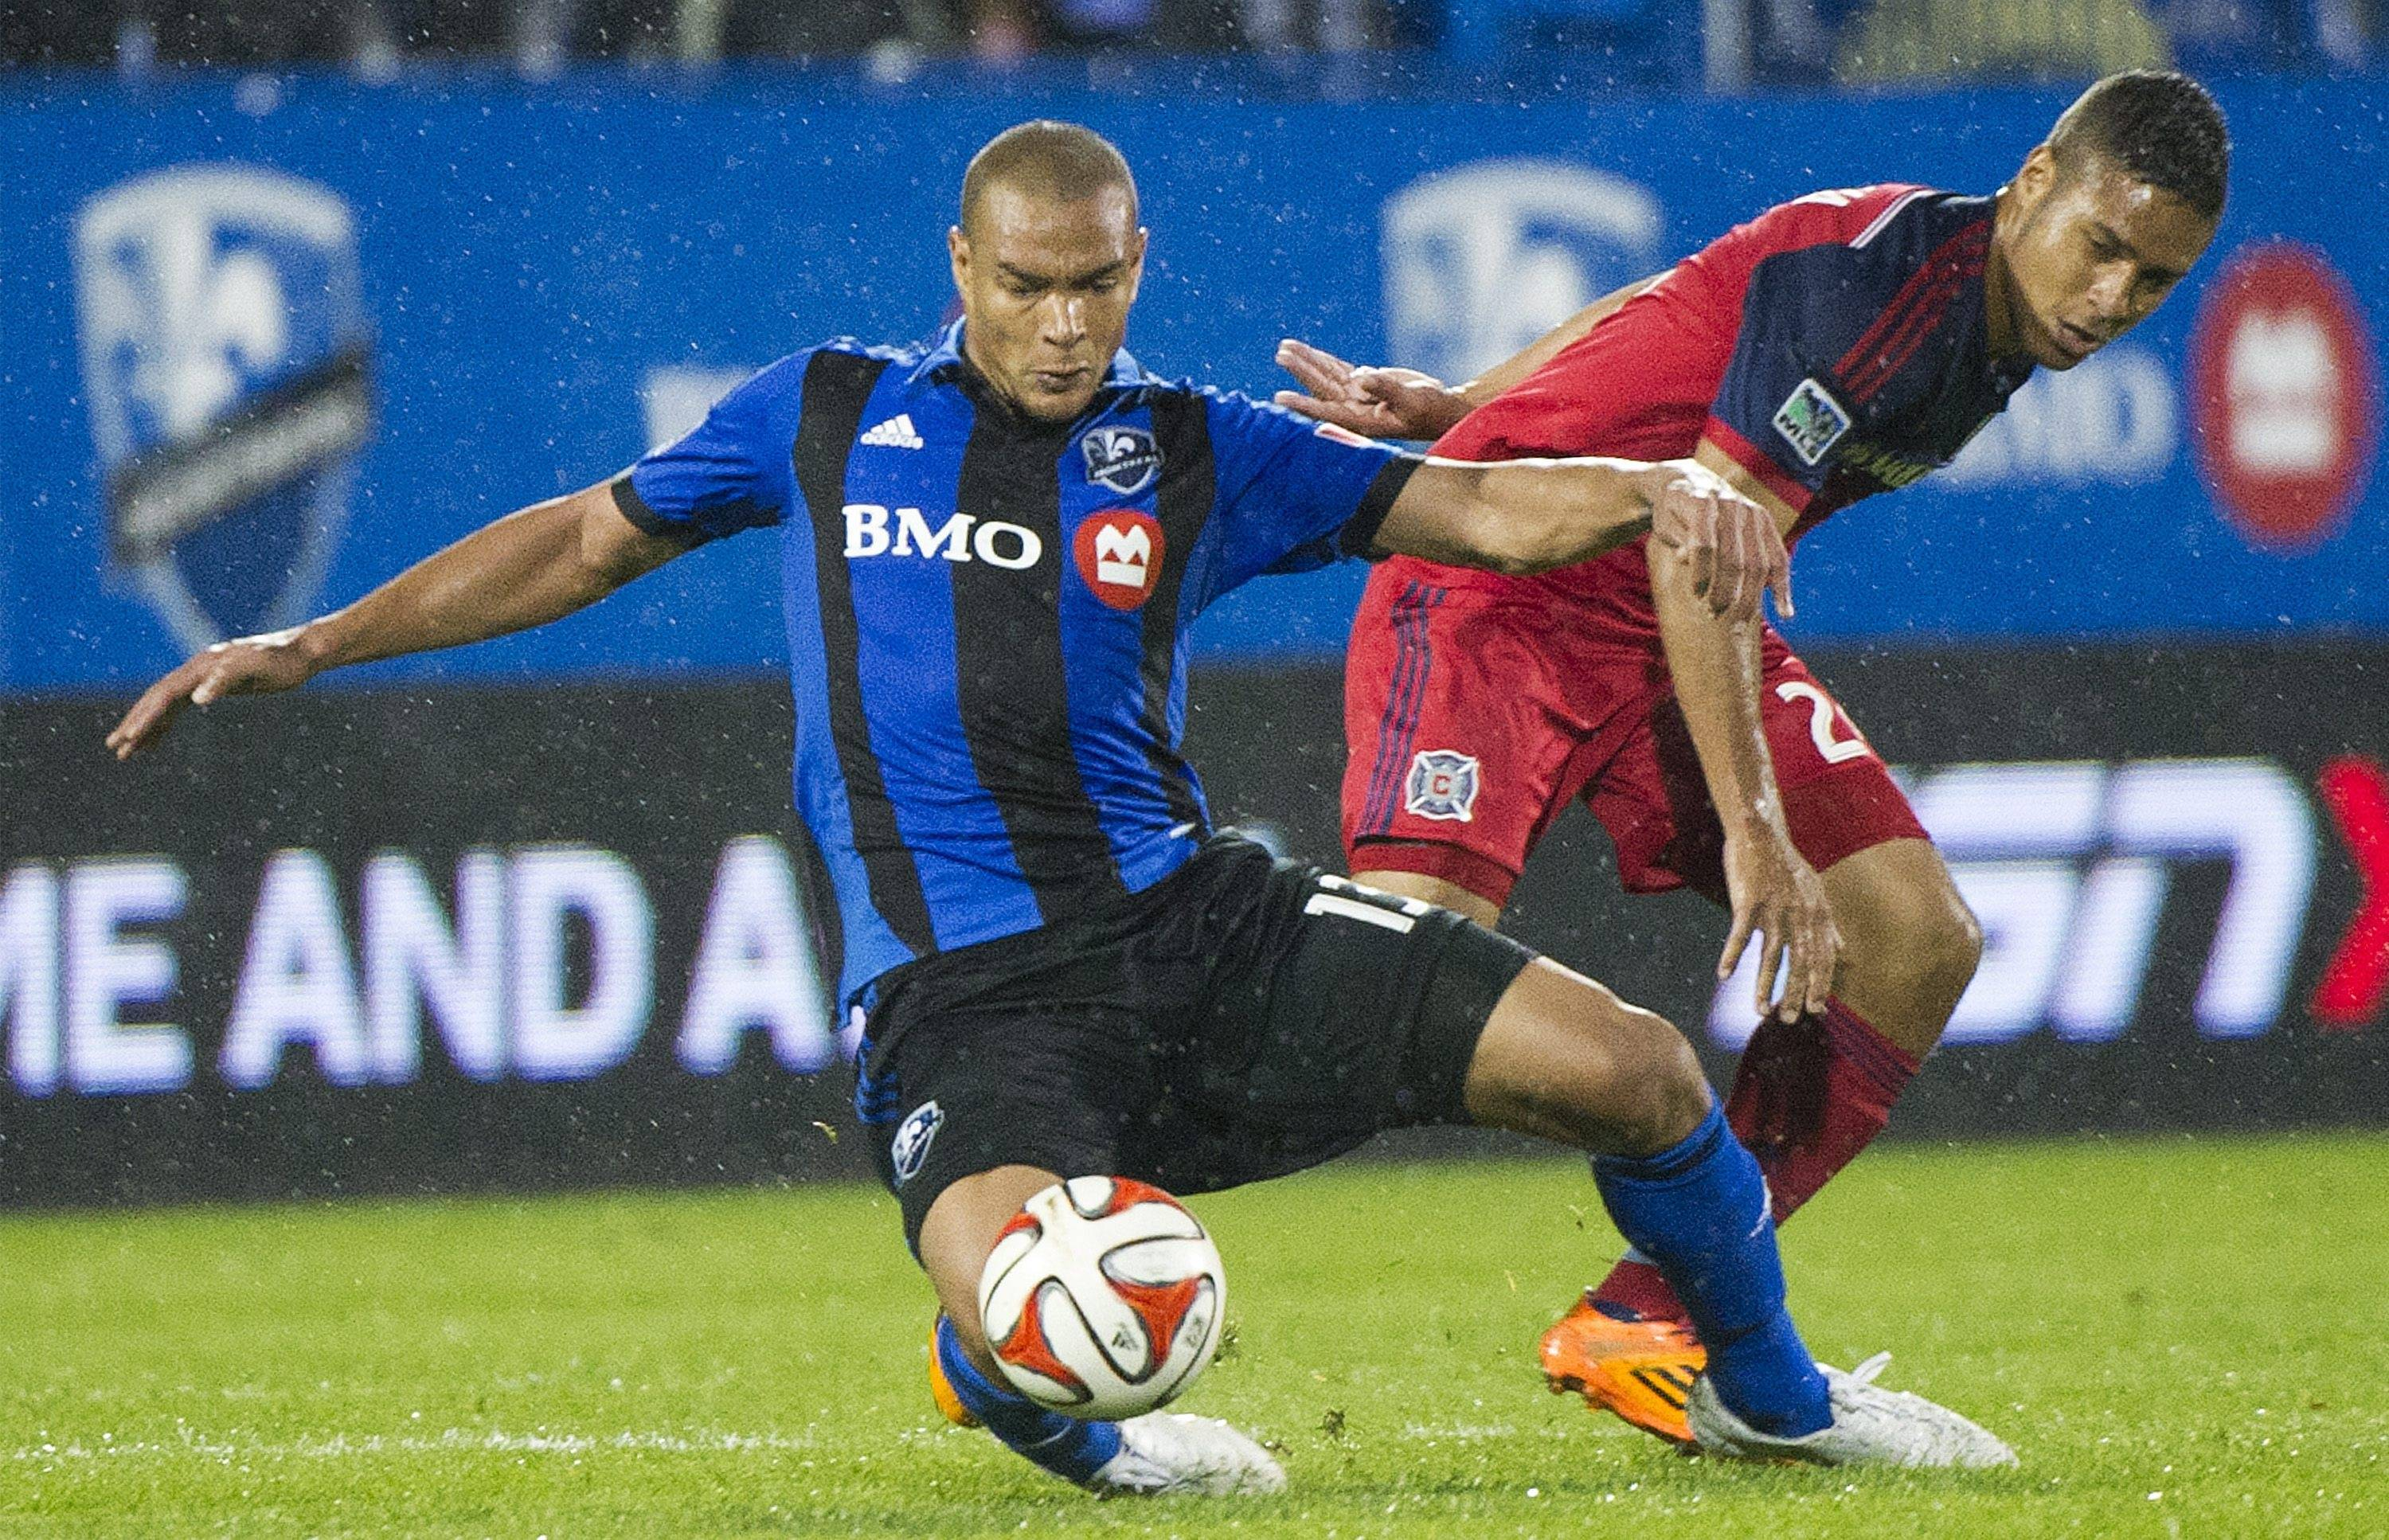 The Montreal Impact's Matteo Ferrari, left, and Chicago Fire's Quincy Amarikwa vie for the ball during Saturday's match in Montreal. The Impact won 1-0, breaking a 7-game losing streak.